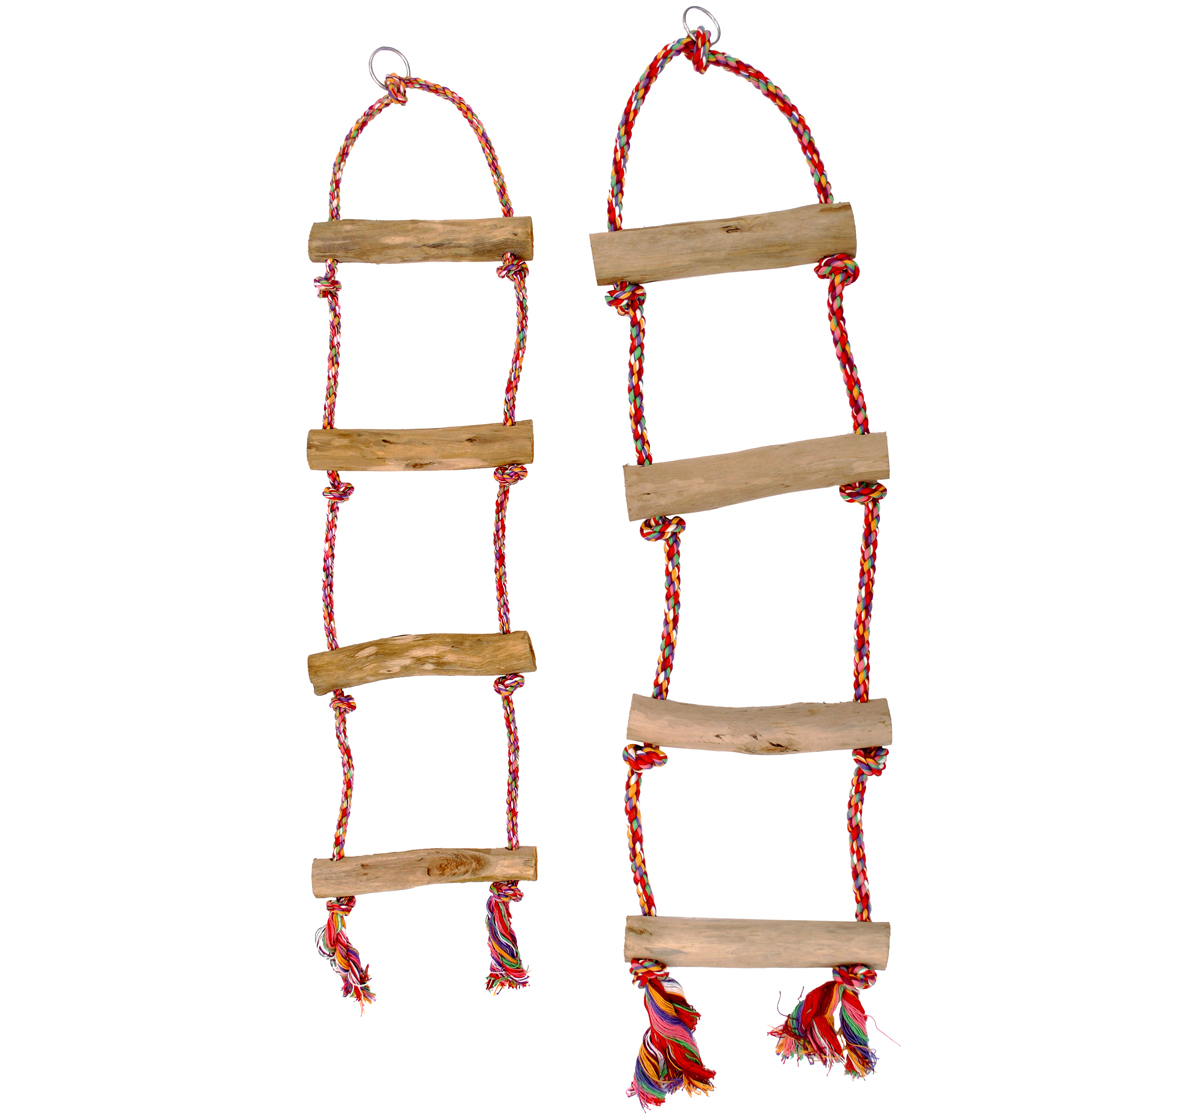 Cotton Rope Bird Ladder Medium Knot A Rope | DogSpot - Online Pet ... for Rope Ladder Knot  181pct